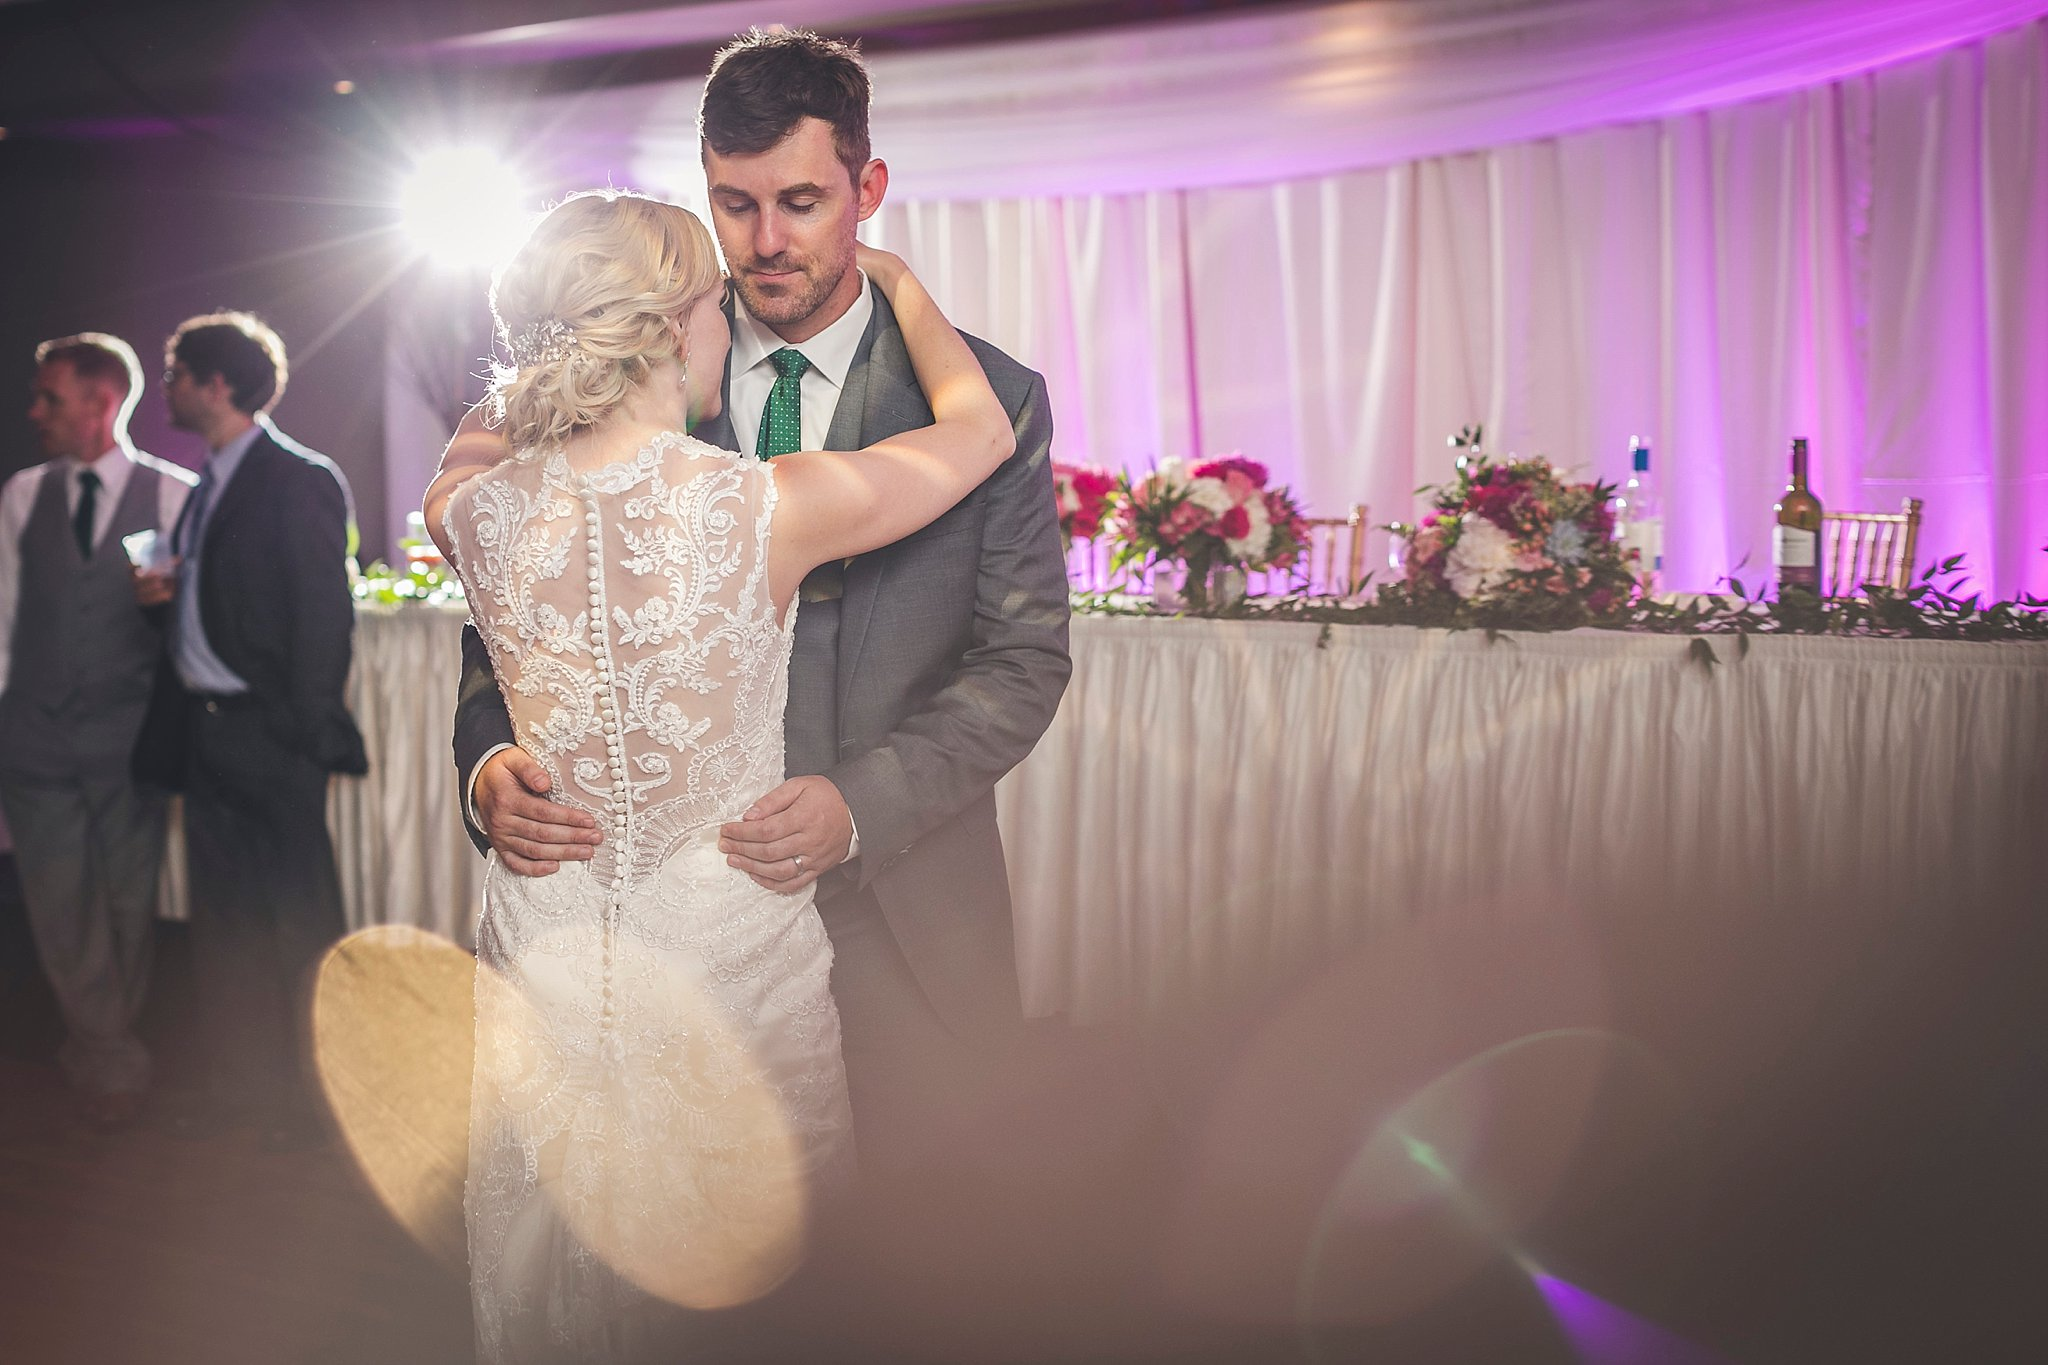 Bride and Groom's first dance during a Newfoundland Wedding held at Glendenning in St. John's